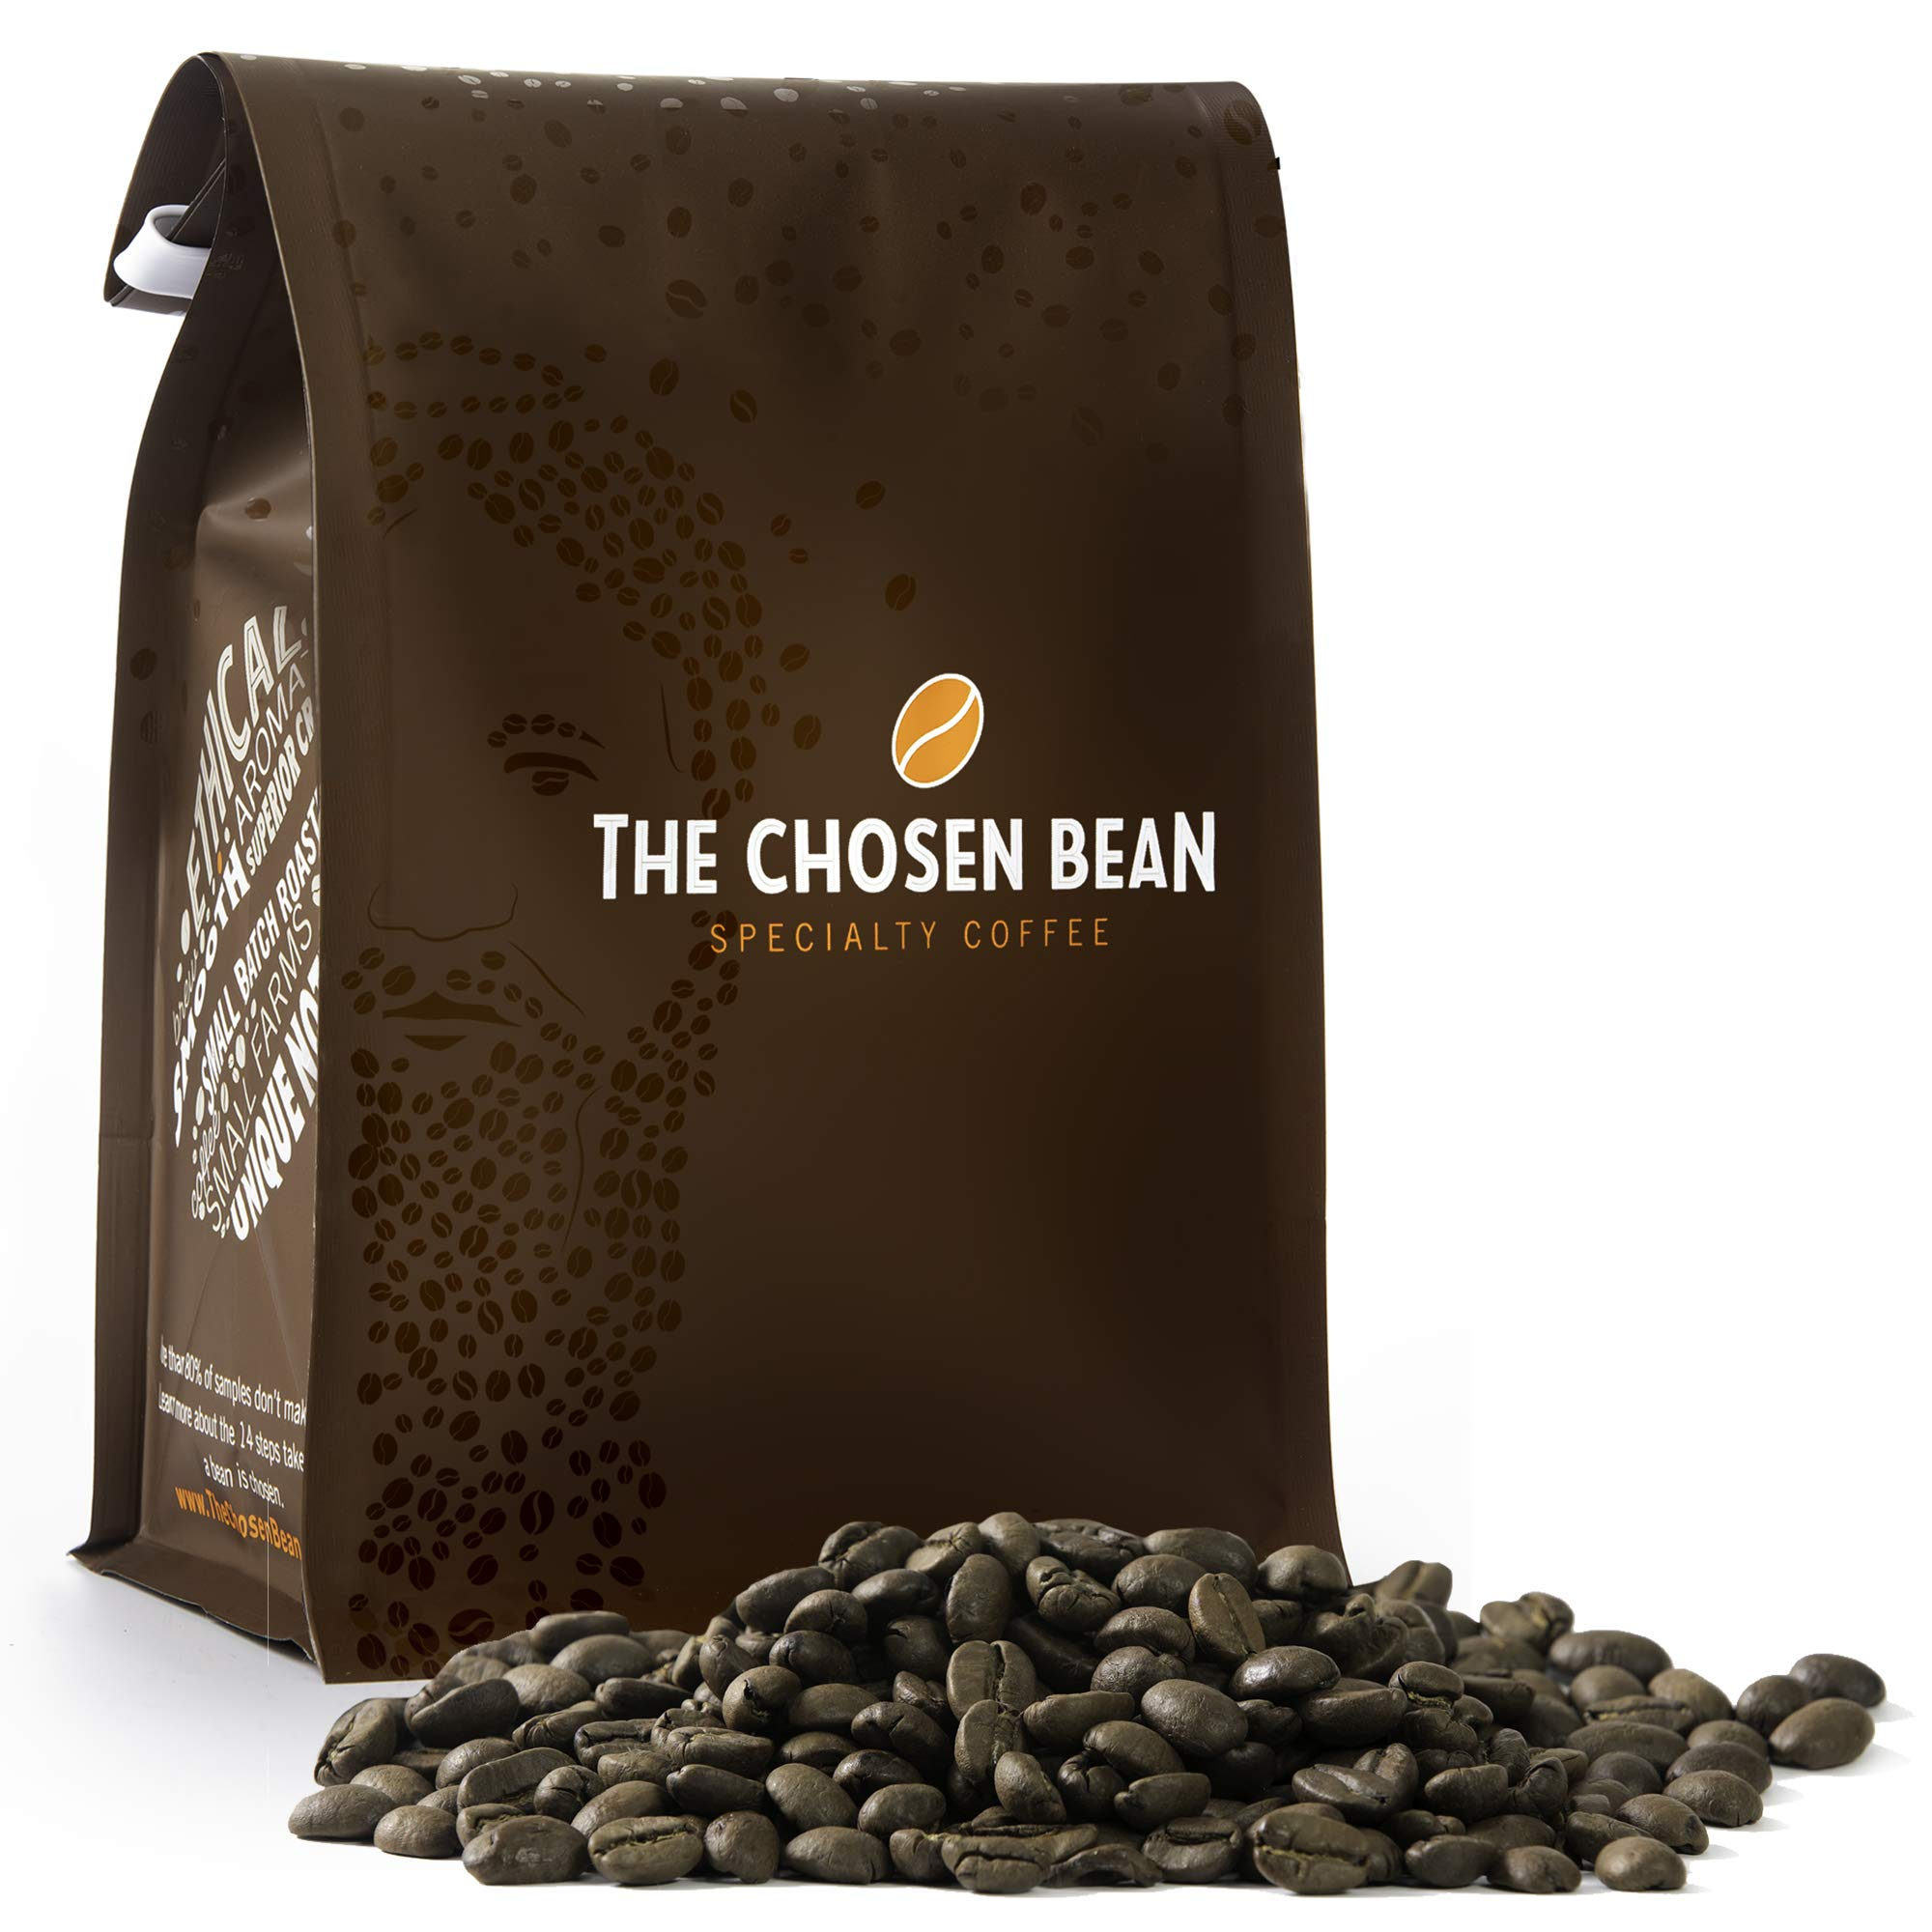 Cold Brew Coffee Solution Specialty Coffee Beans (Whole Bean, 5LB) by The Chosen Bean (Image #4)